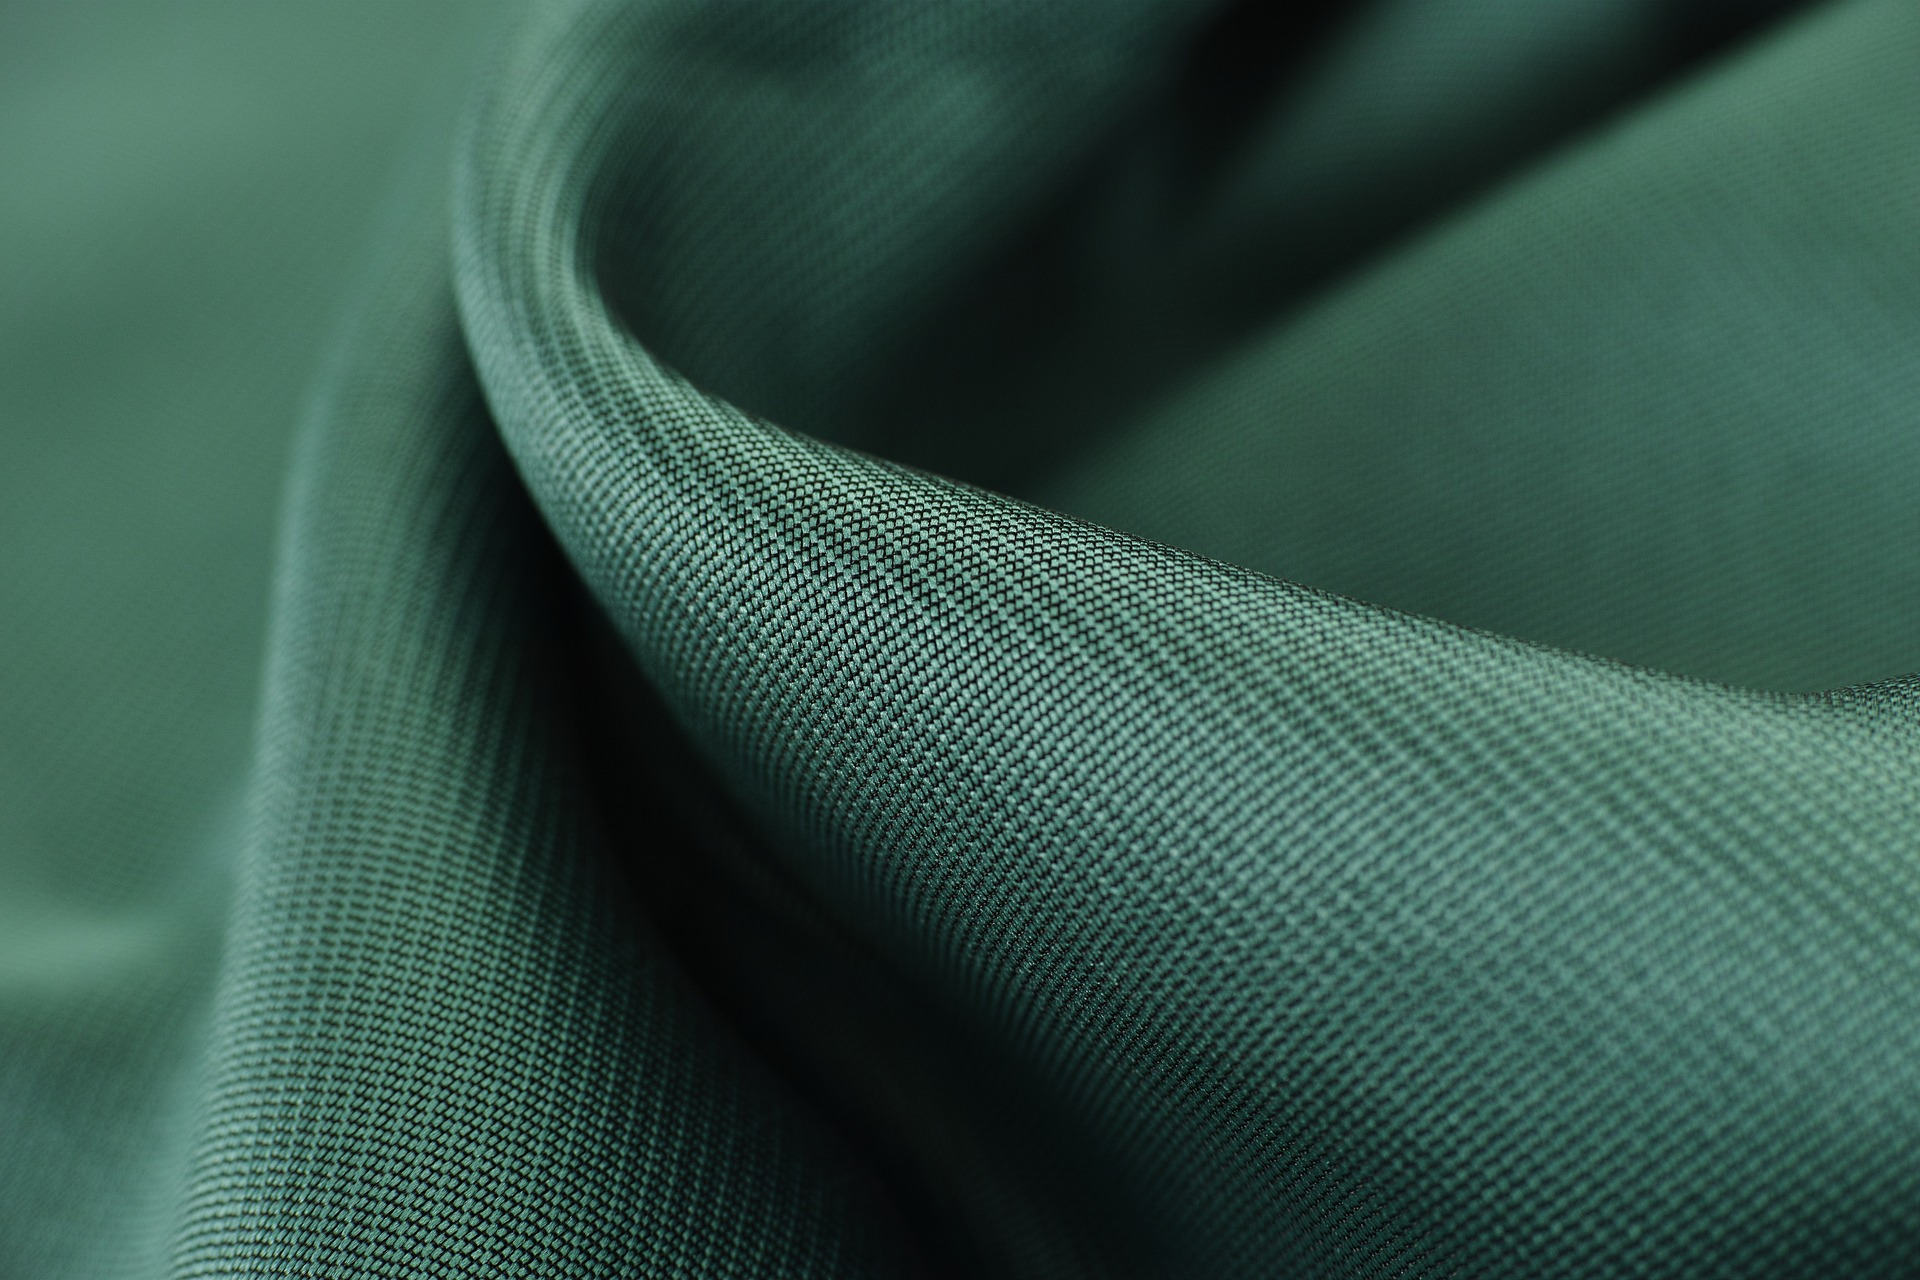 Textile Dark fabric with hint of green